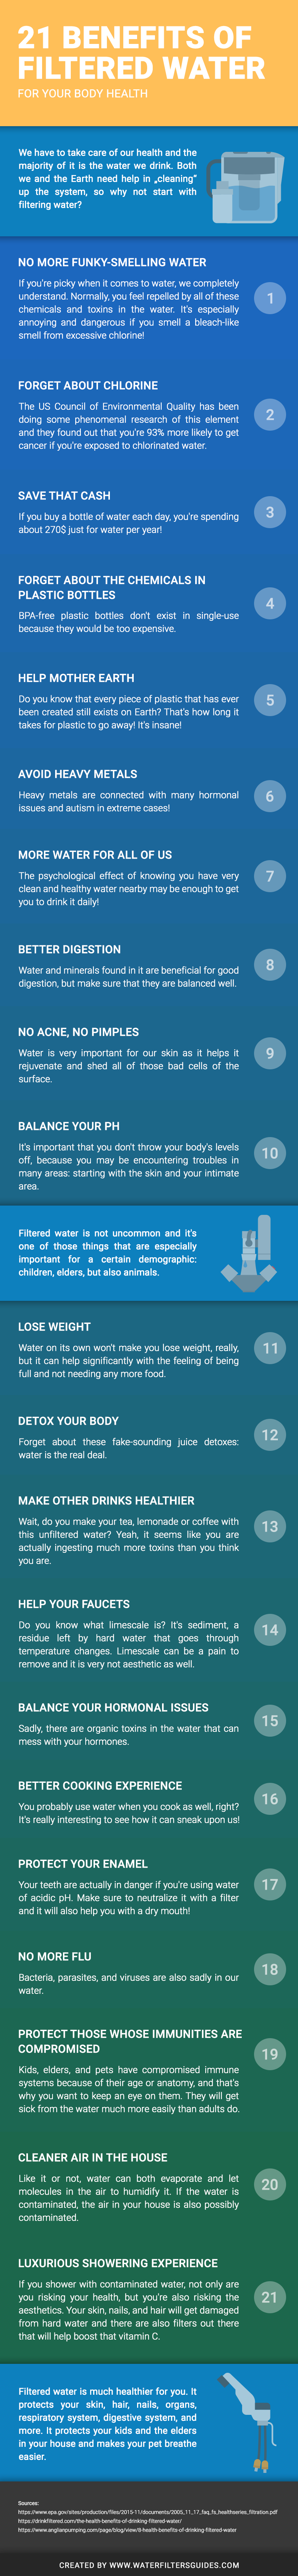 21 Strong Reasons to Shift to Filtered Water - Infographic